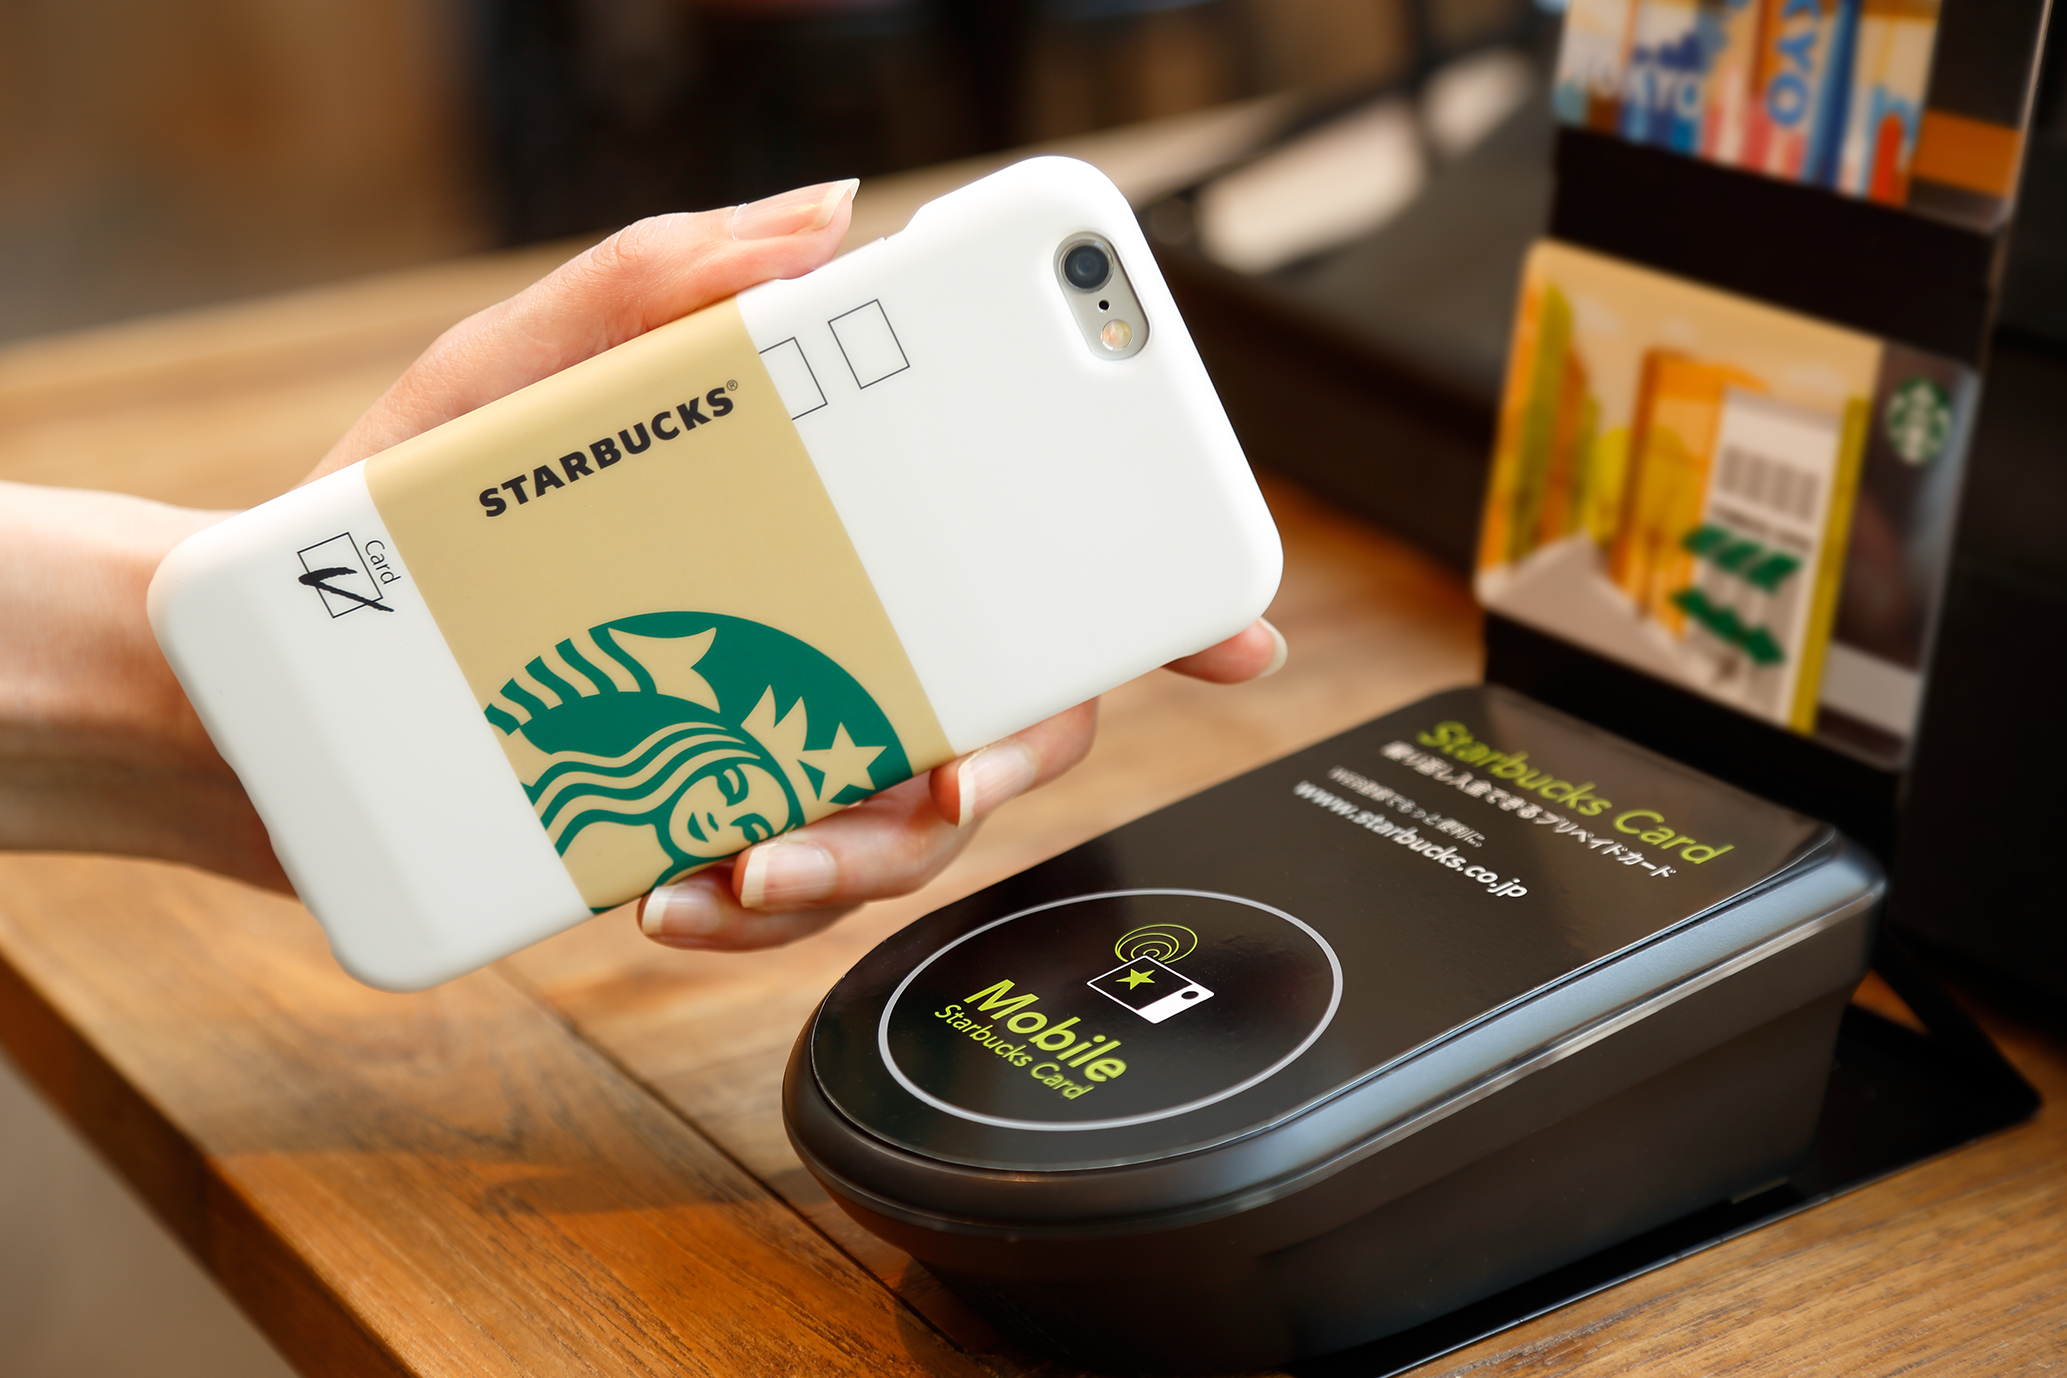 Starbucks Revamps Loyalty Program To Count Dollars Spent, Not Number Of Visits